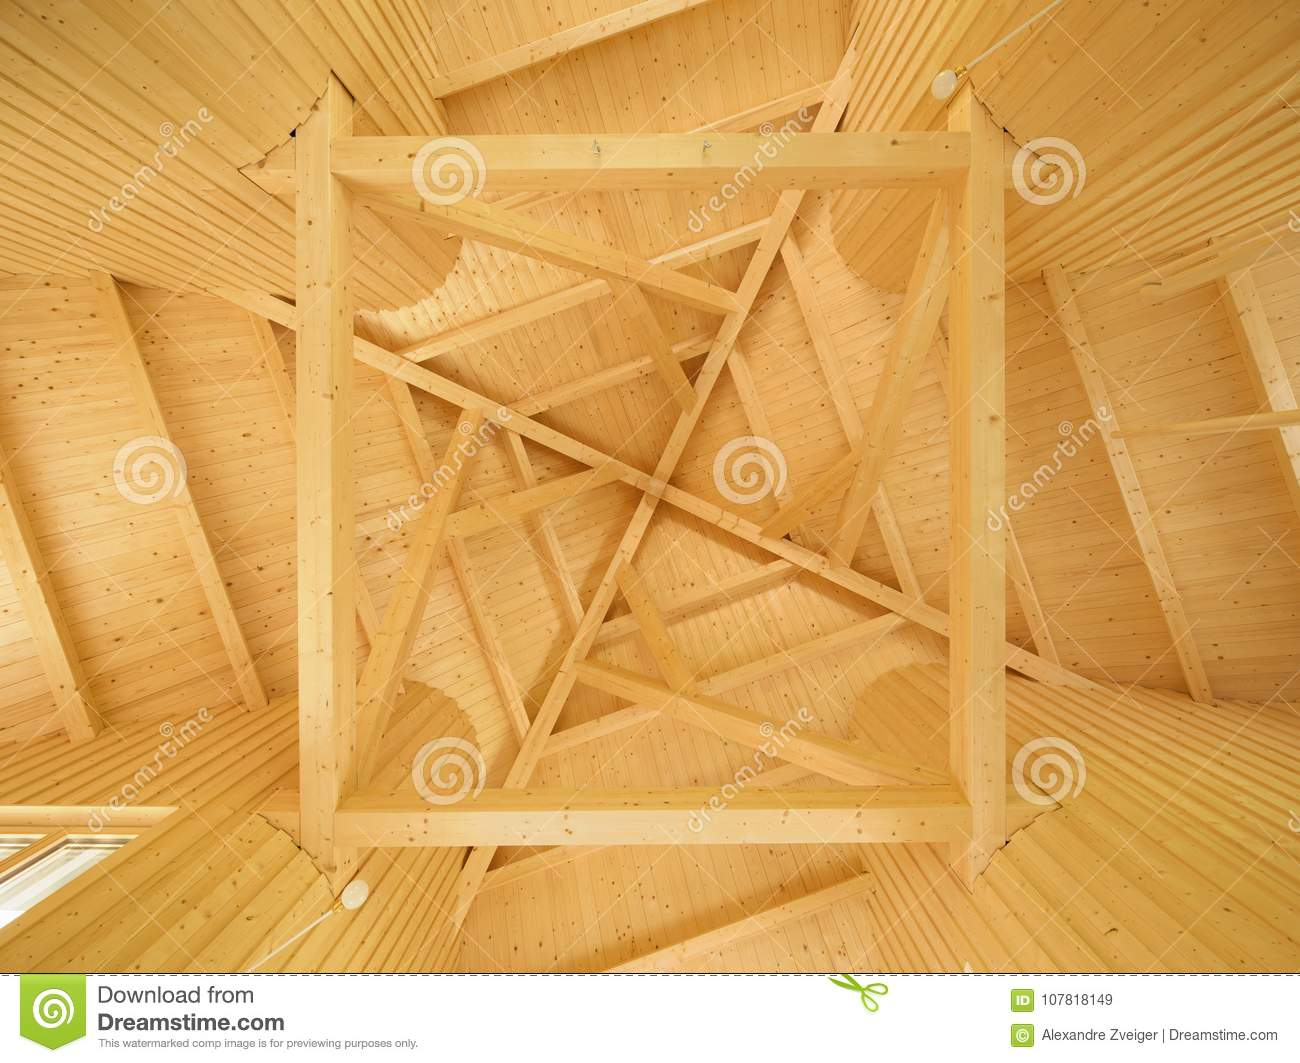 Ceiling with geometric pattern of wooden beams